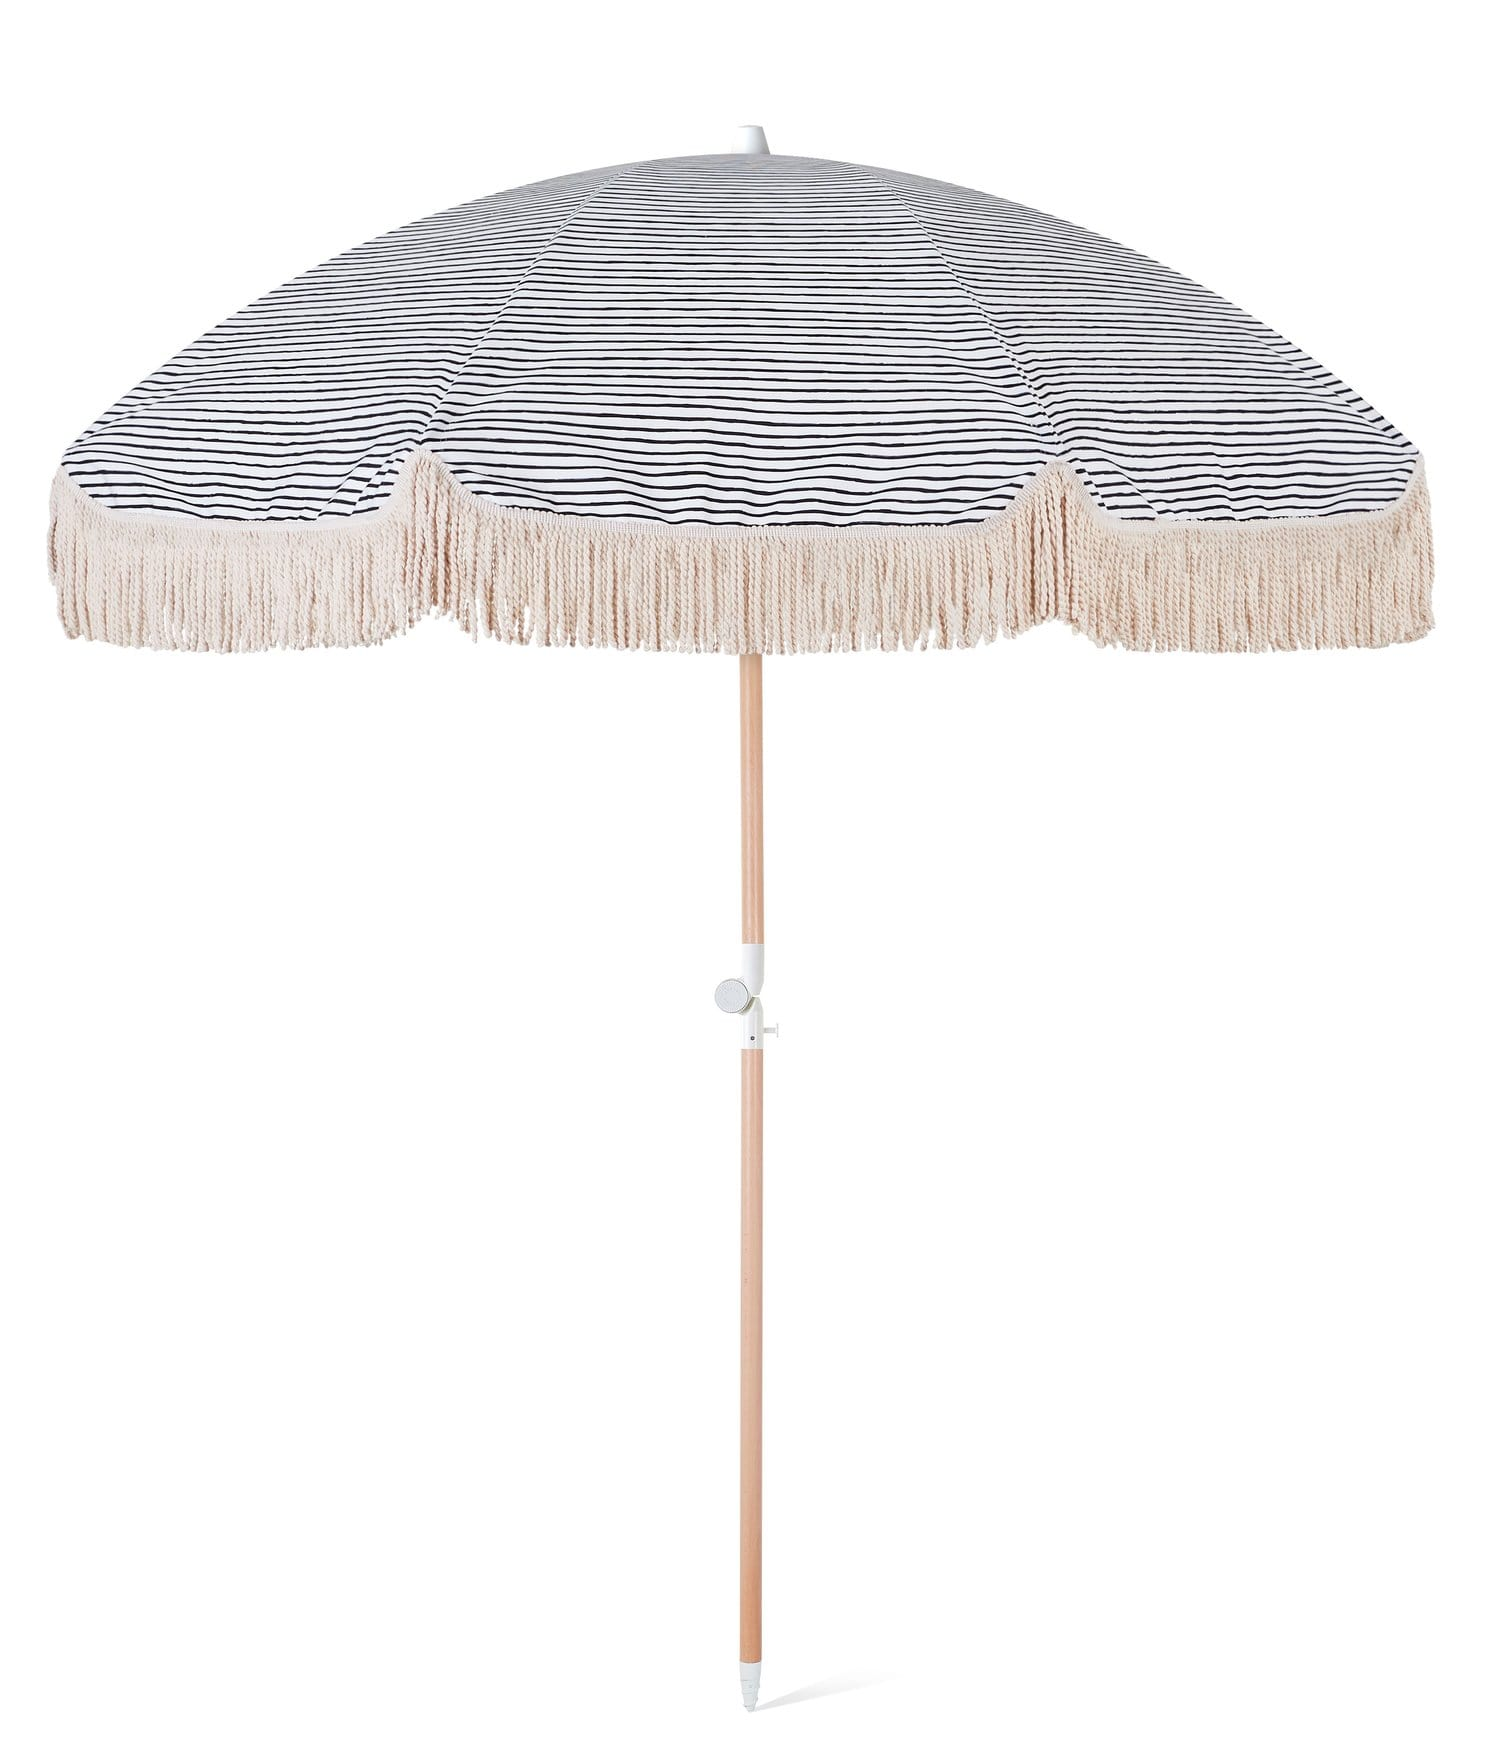 SUNDAY Umbrella - NATURAL INSTINCT (BLACK BASE)